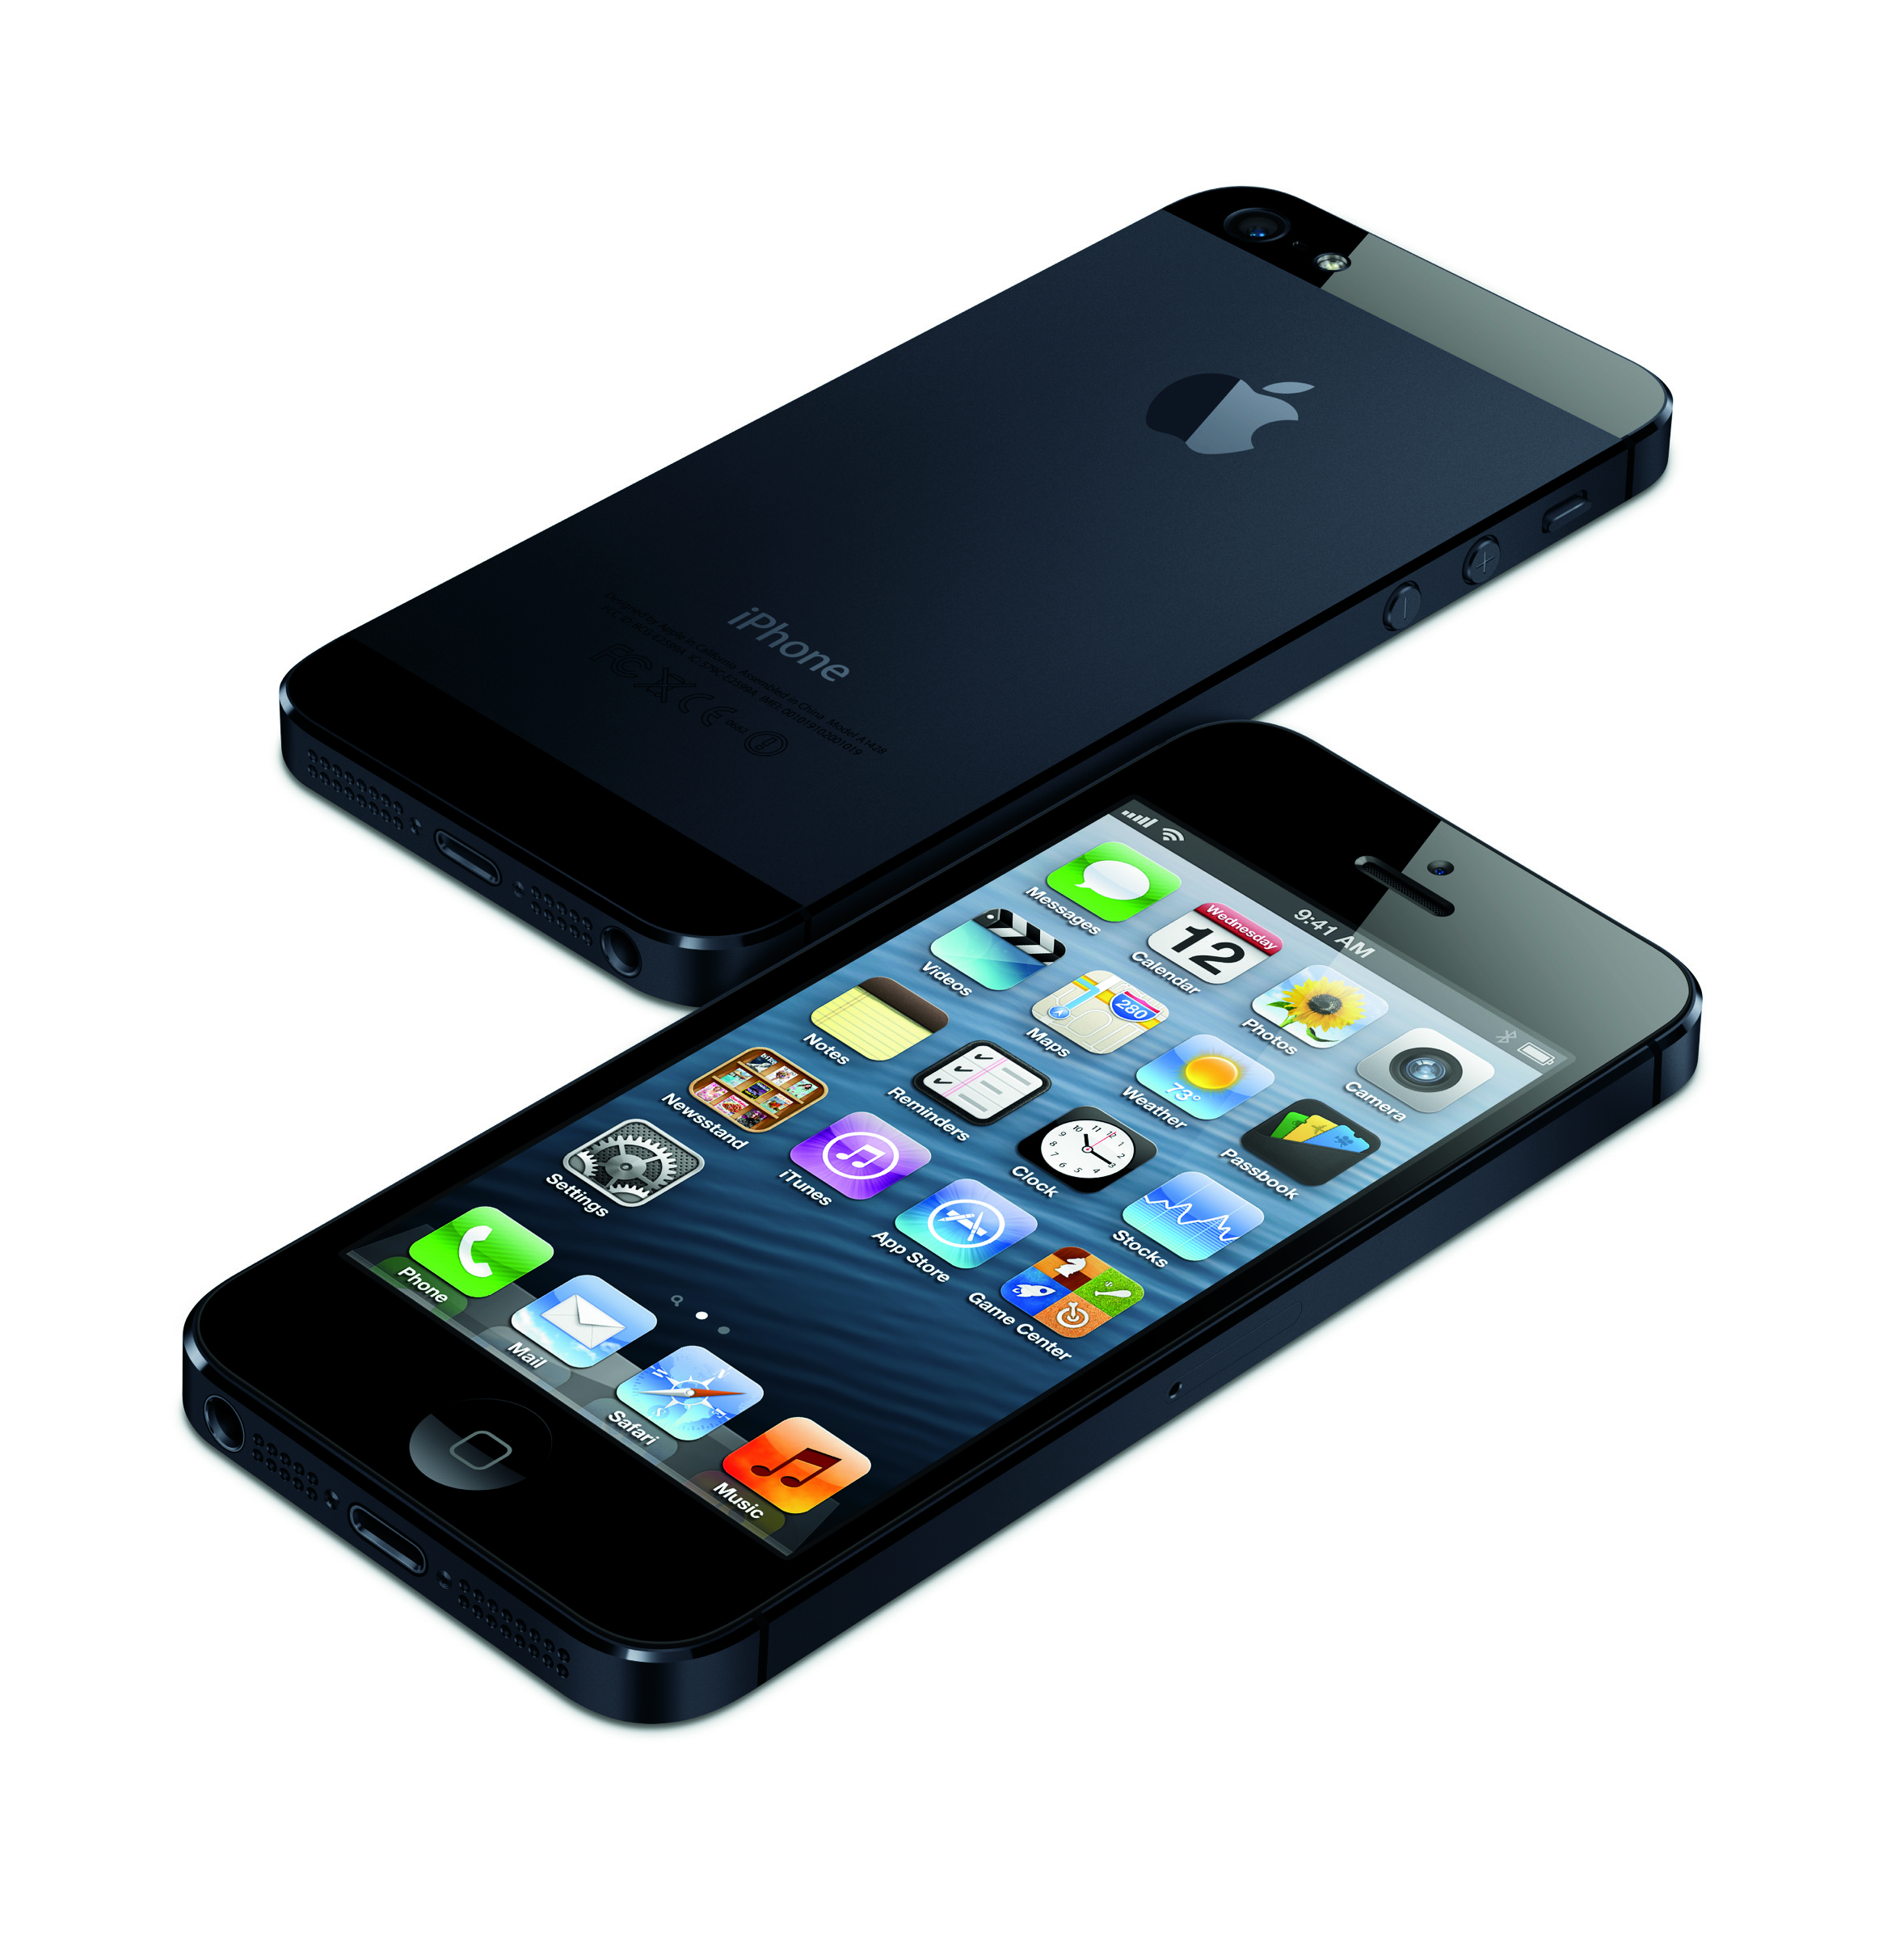 The new iPhone 5 boast a bigger screen, a slimmer body and a new connector.